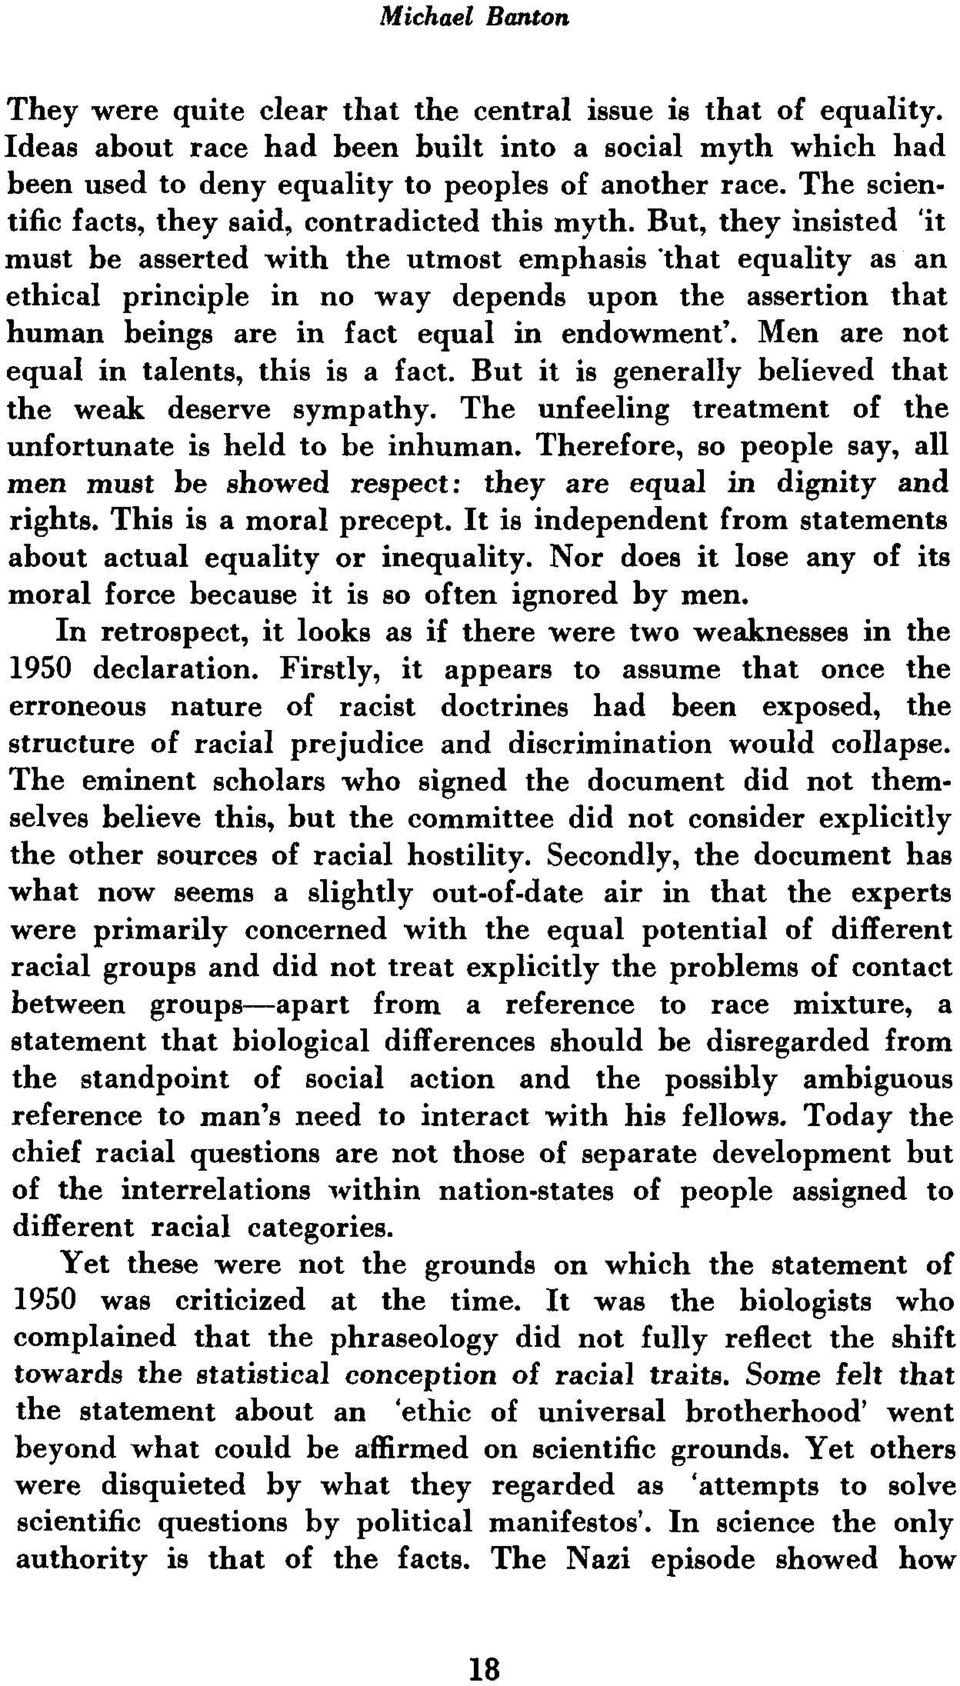 But, they insisted it must be asserted with the utmost emphasis that equality as an ethical principle in no way depends upon the assertion that human beings are in fact equal in endowment.